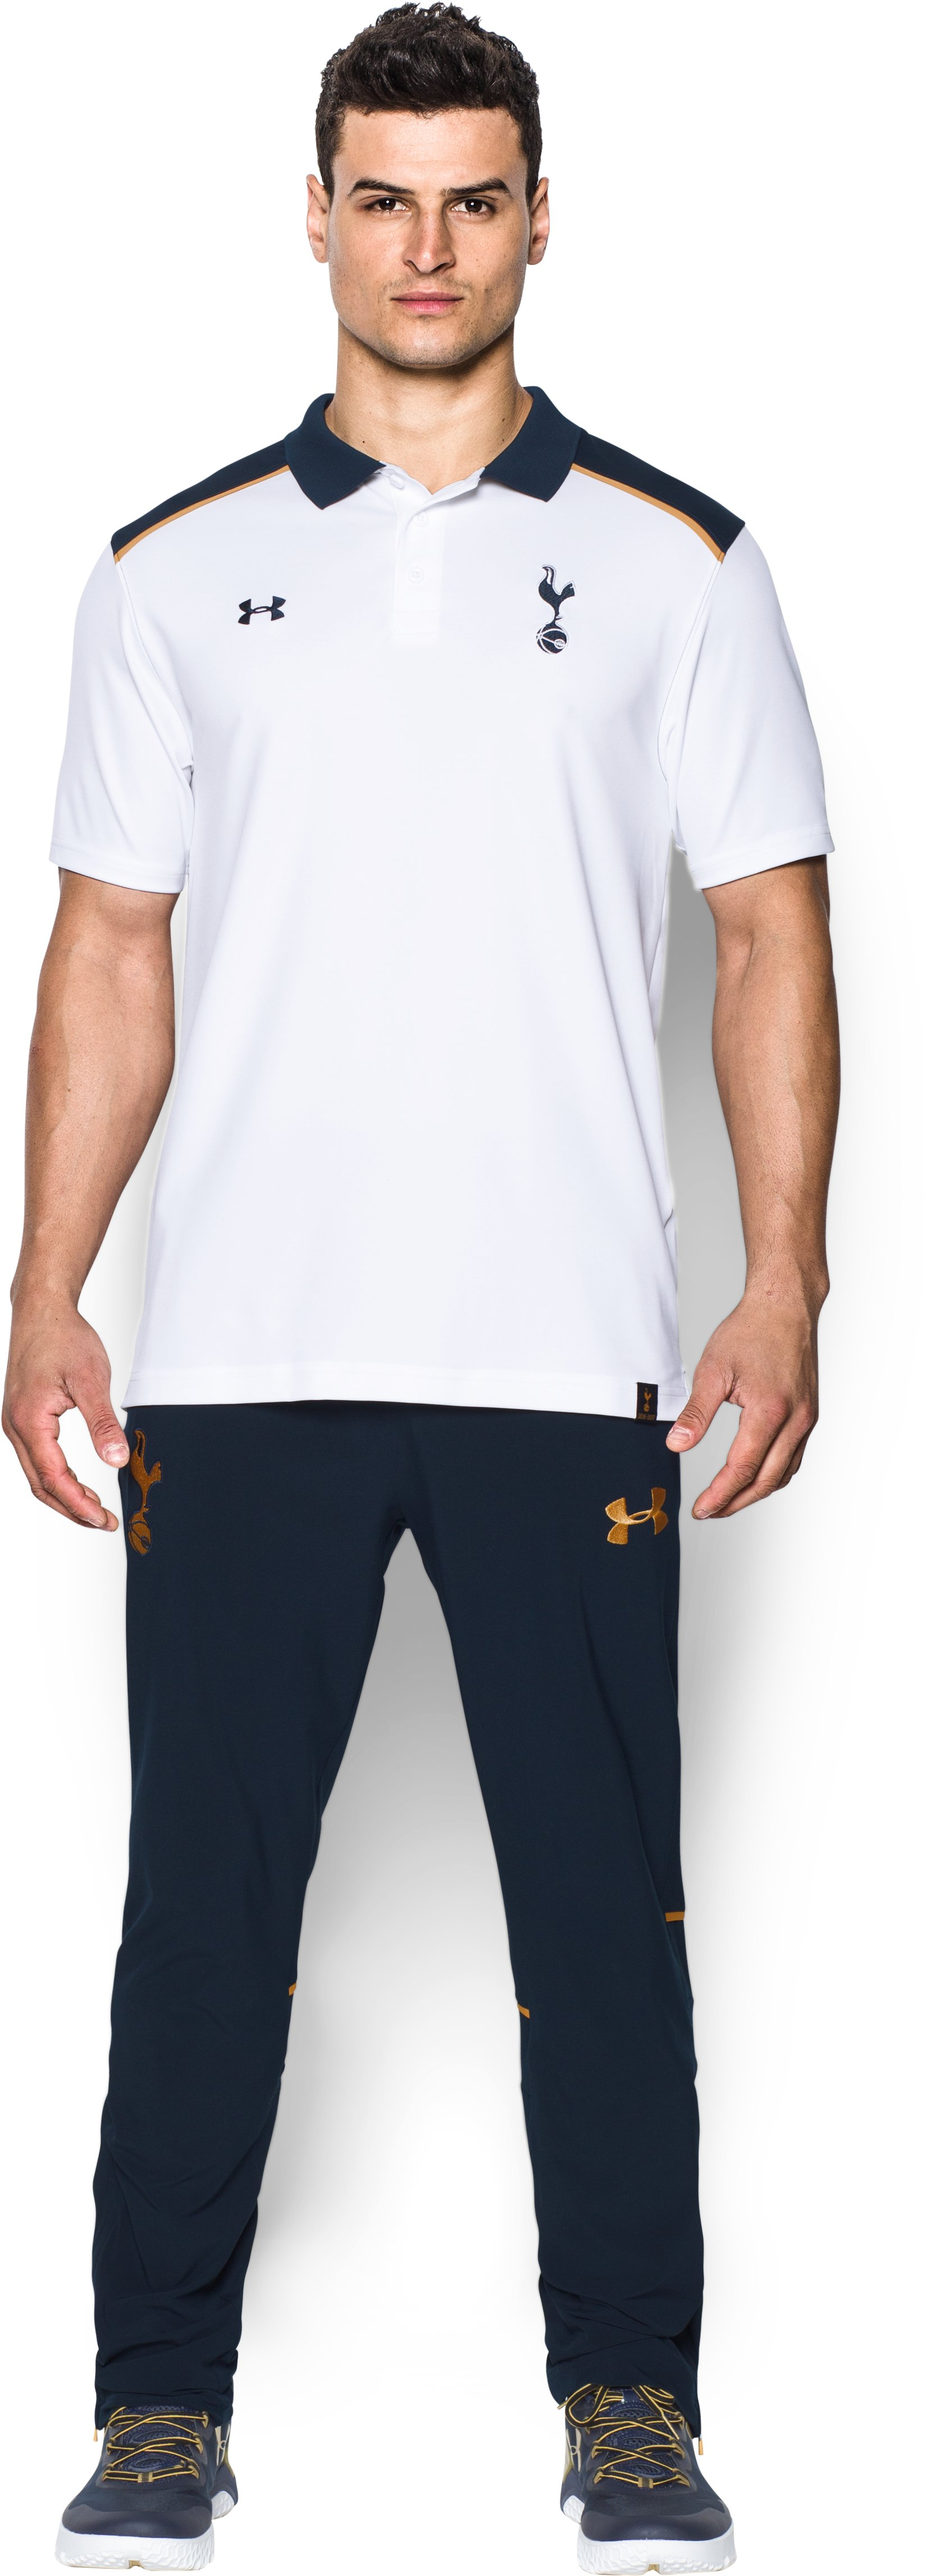 Men's Tottenham Hotspur 16/17 Team Polo, White